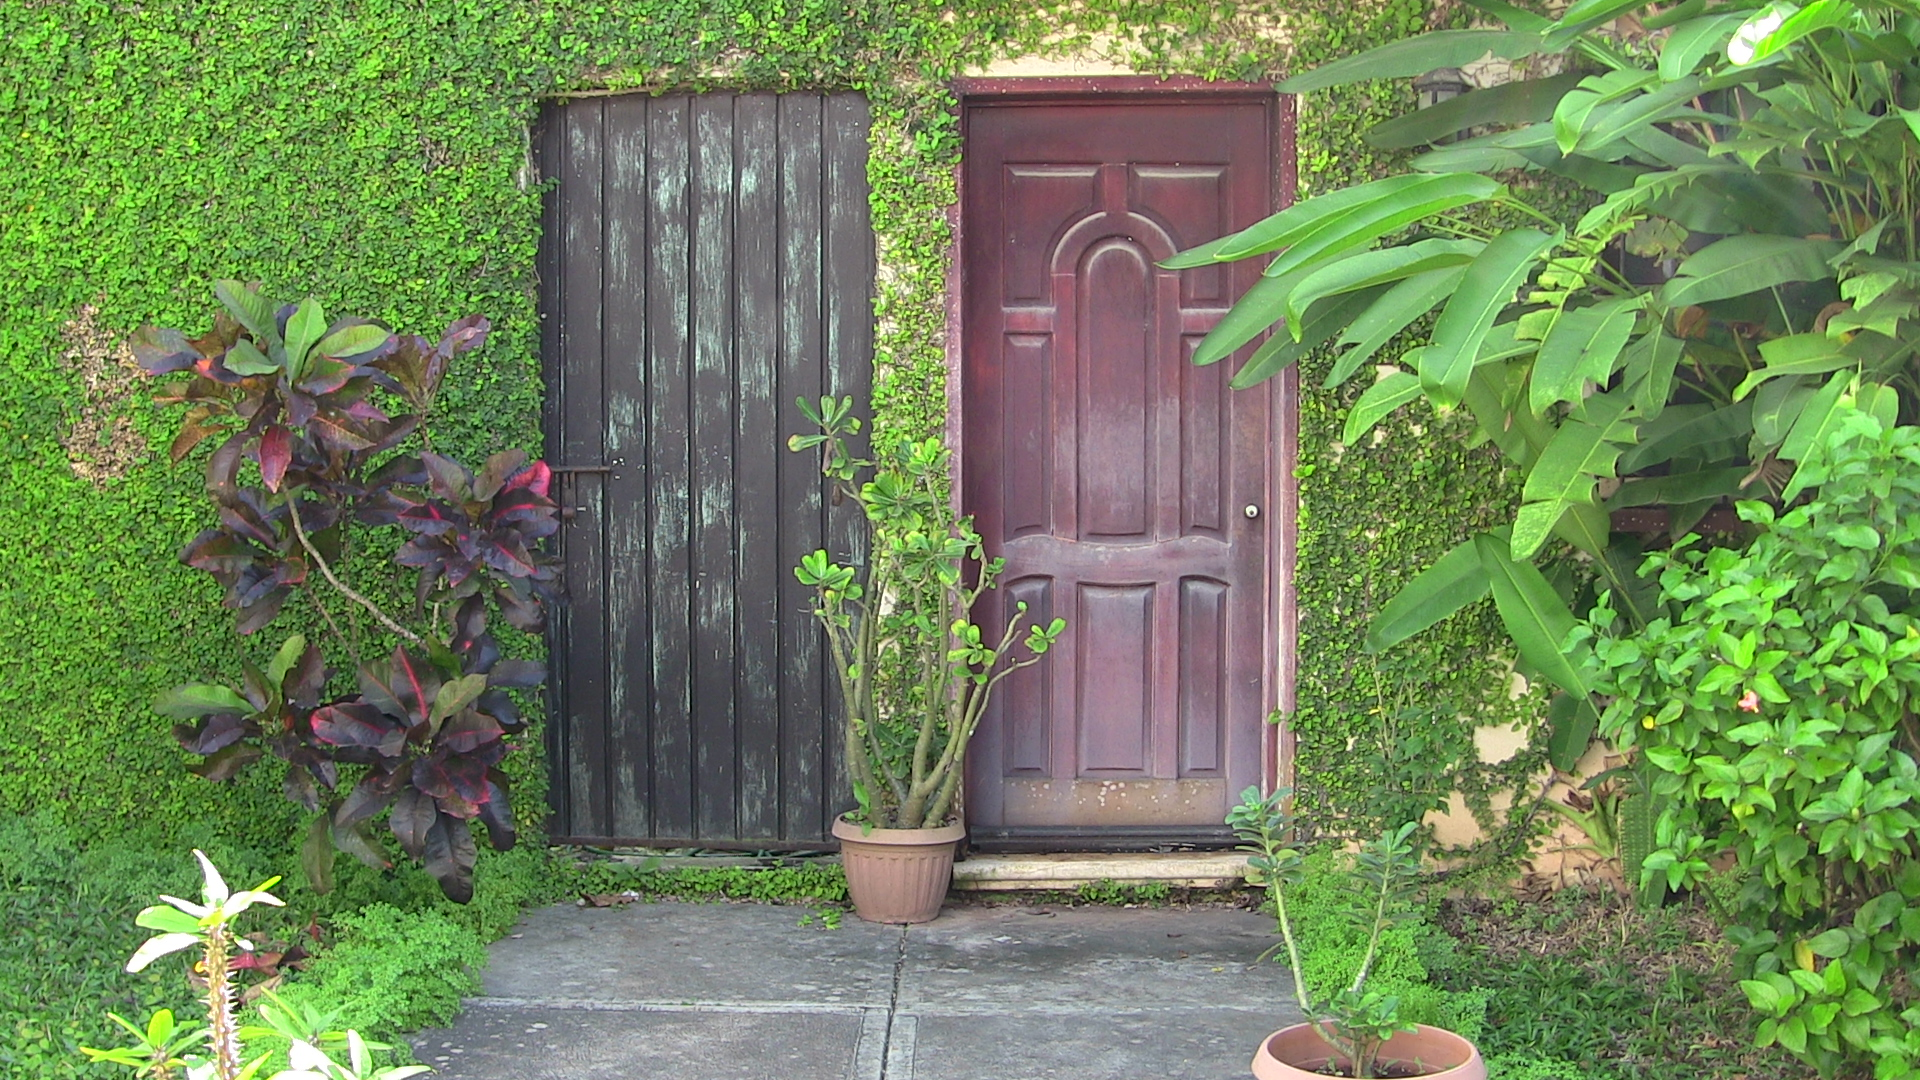 Doors in Valladolid, Mexico